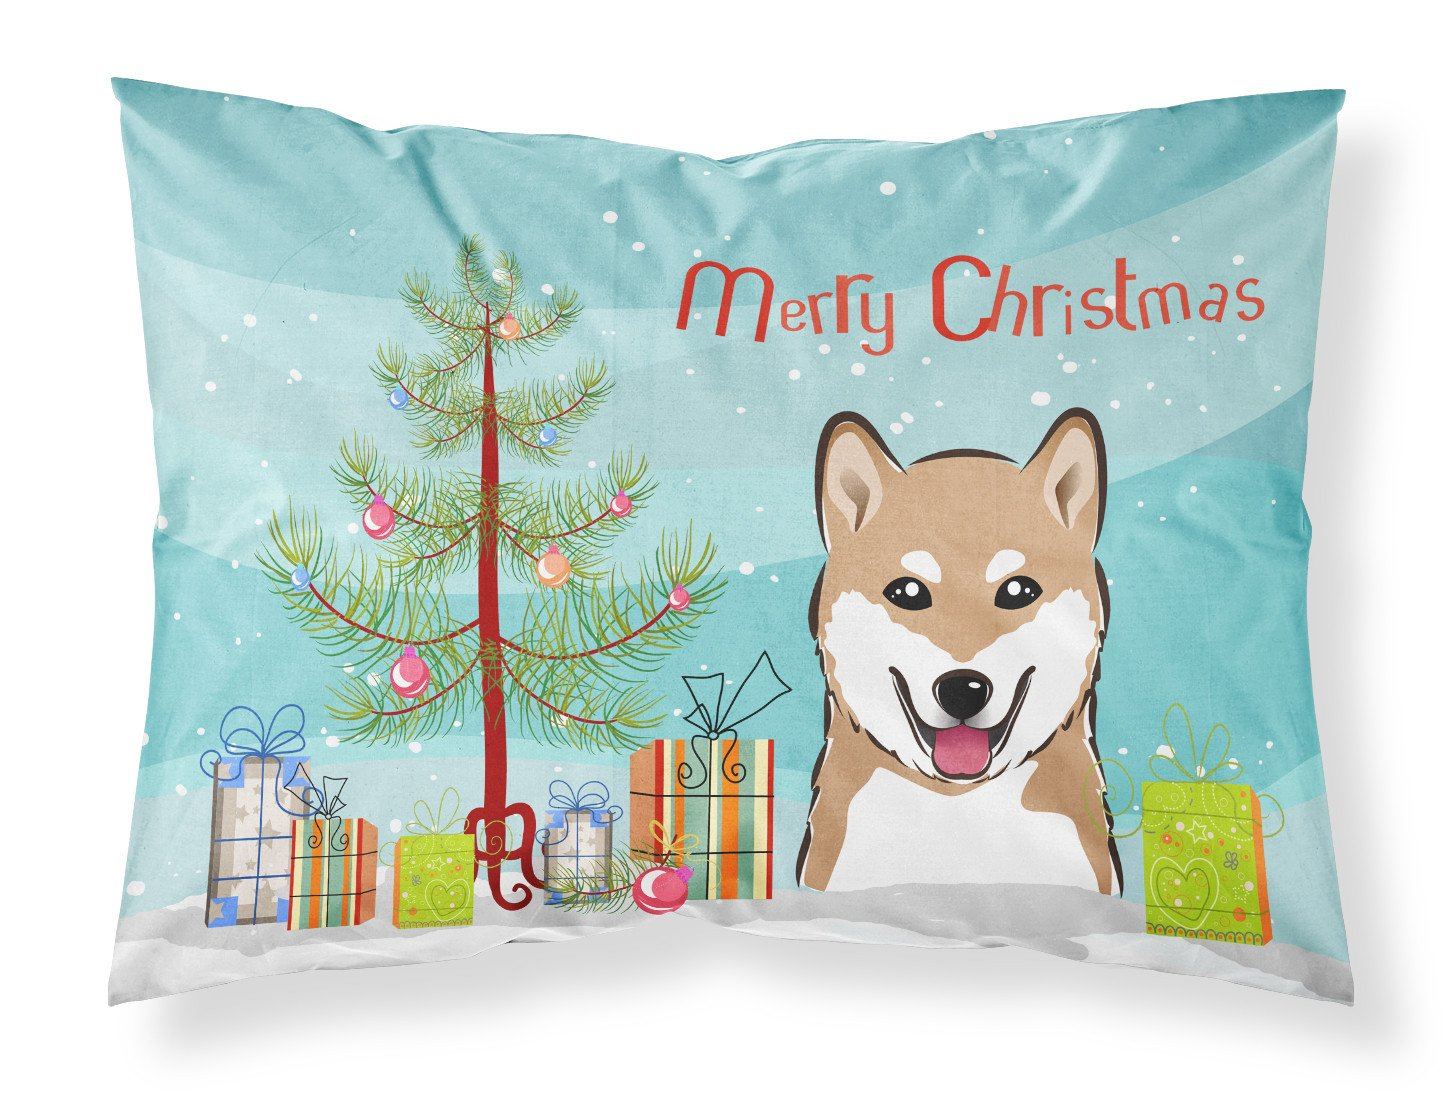 Christmas Tree and Shiba Inu Fabric Standard Pillowcase BB1597PILLOWCASE by Caroline's Treasures